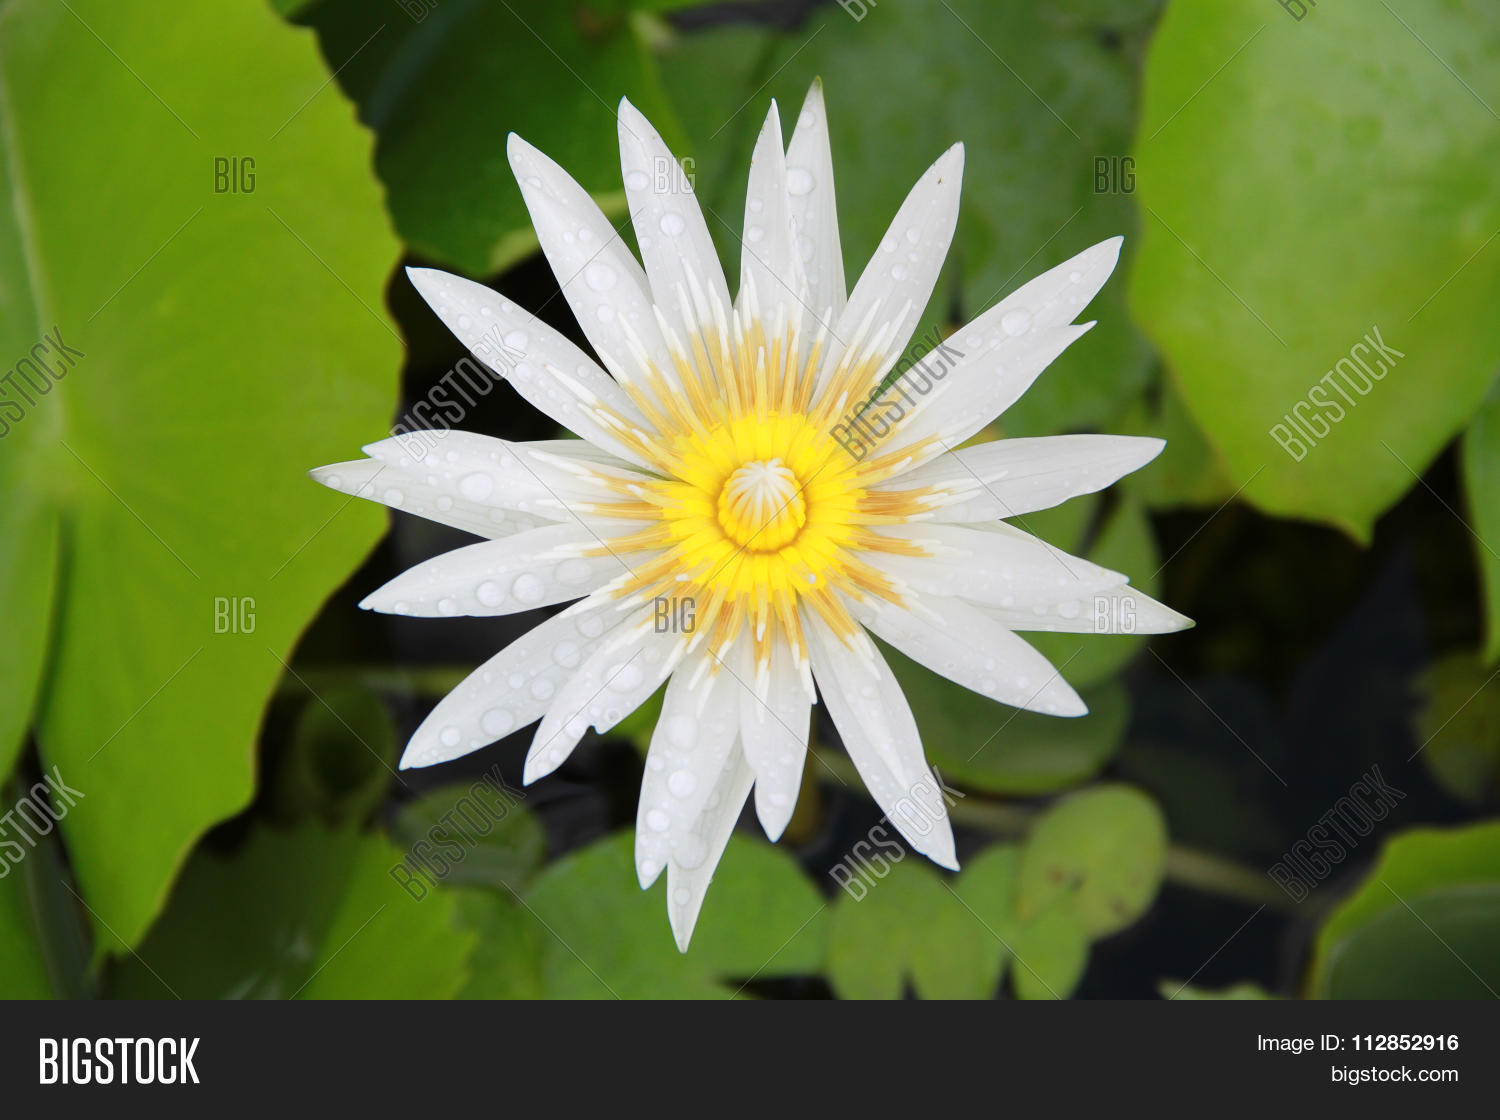 Bright white lotus image photo free trial bigstock bright white lotus flower top view in the pool has some drop water on the petal izmirmasajfo